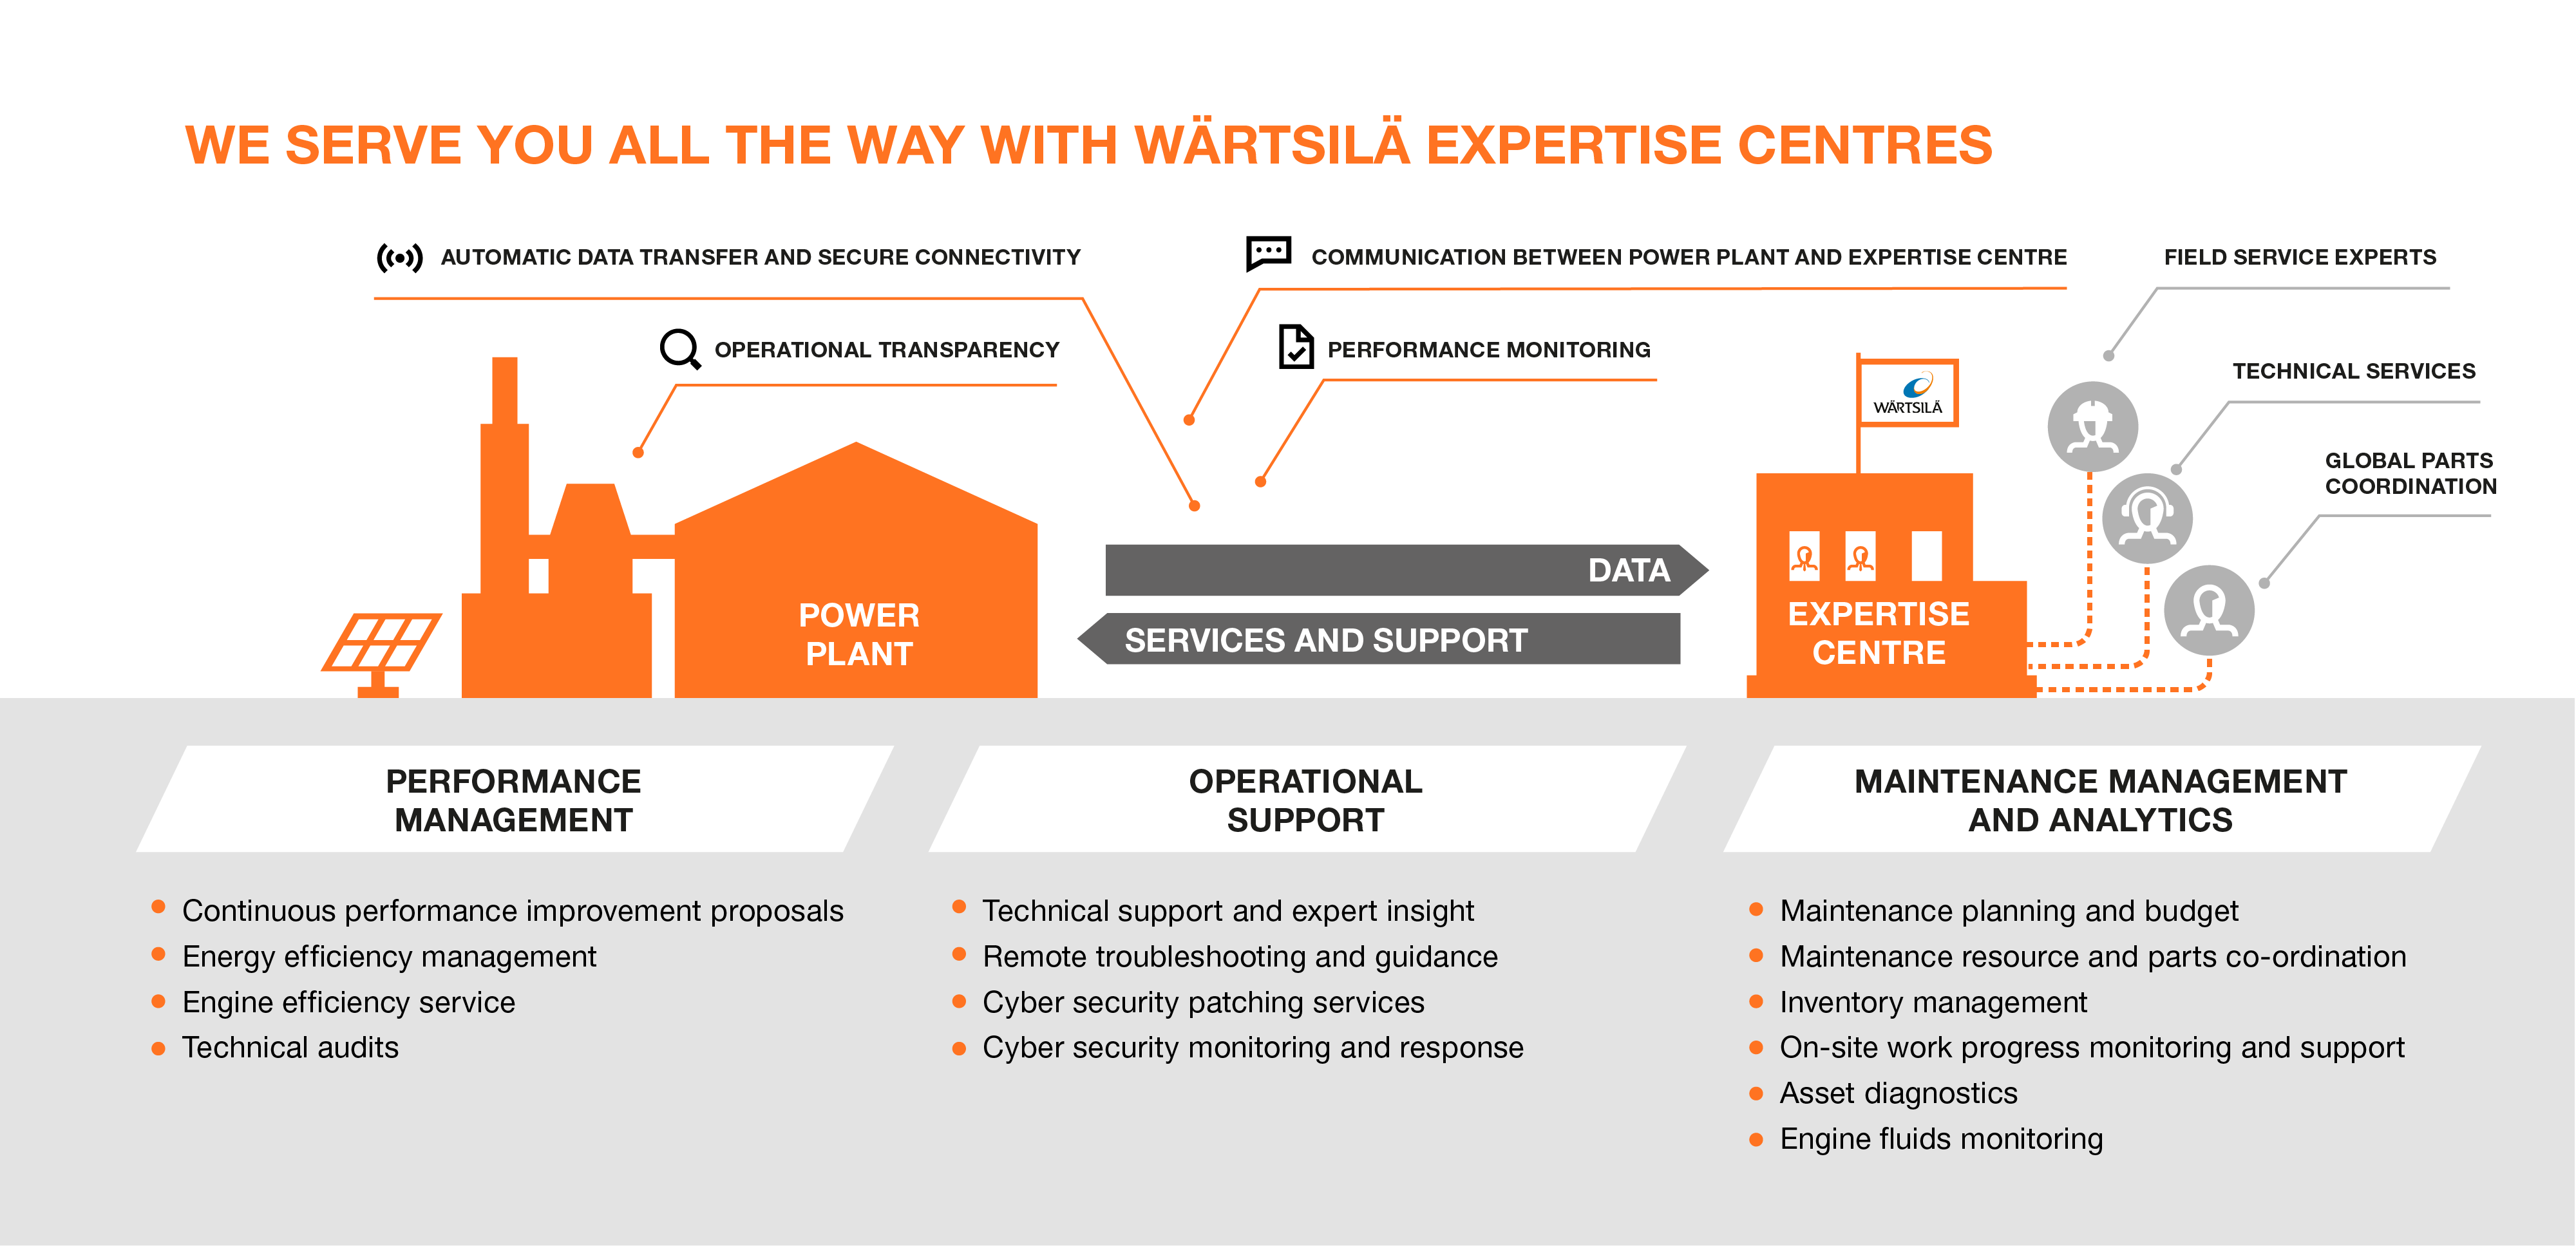 We serve you all the way with Wärtsilä expertise centres